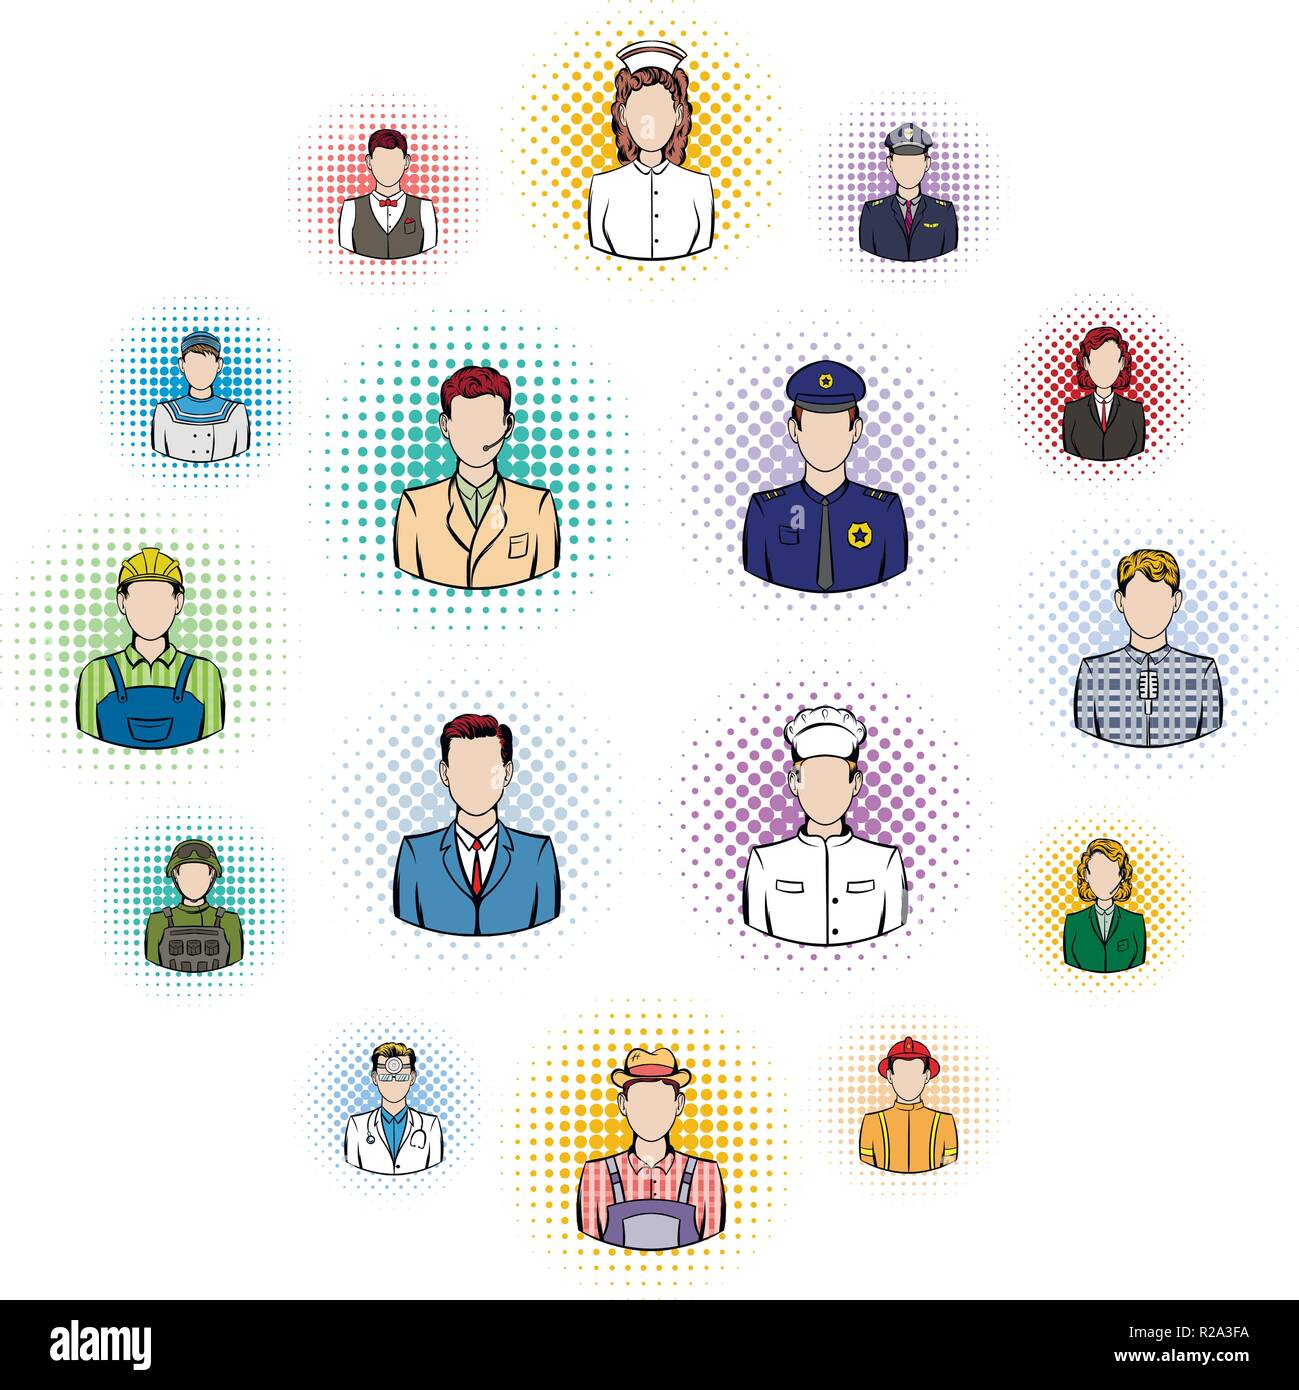 Profession comics icons set isolated on white background - Stock Vector